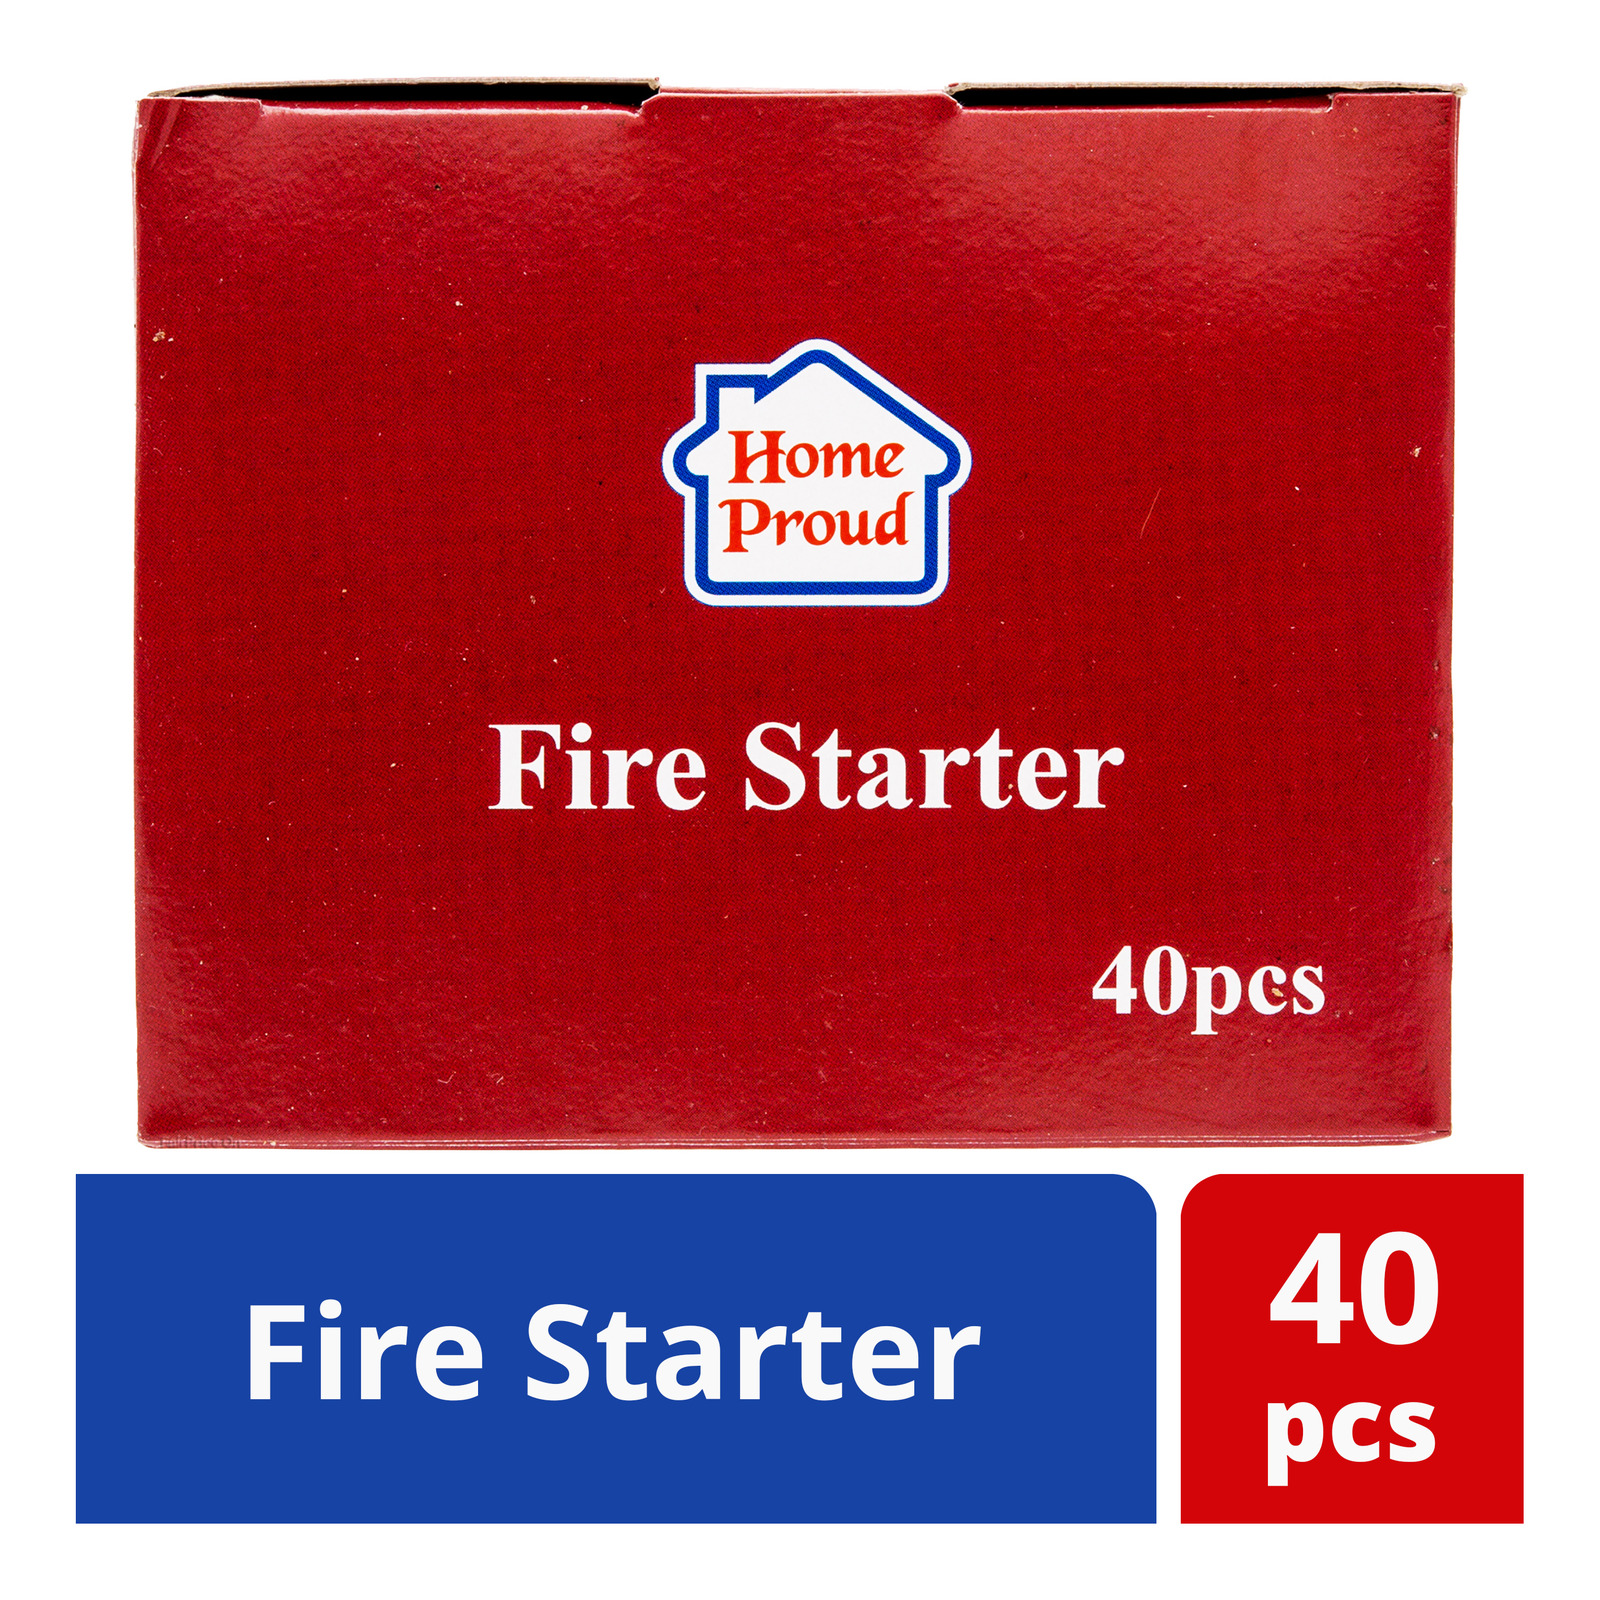 HomeProud Fire Starter